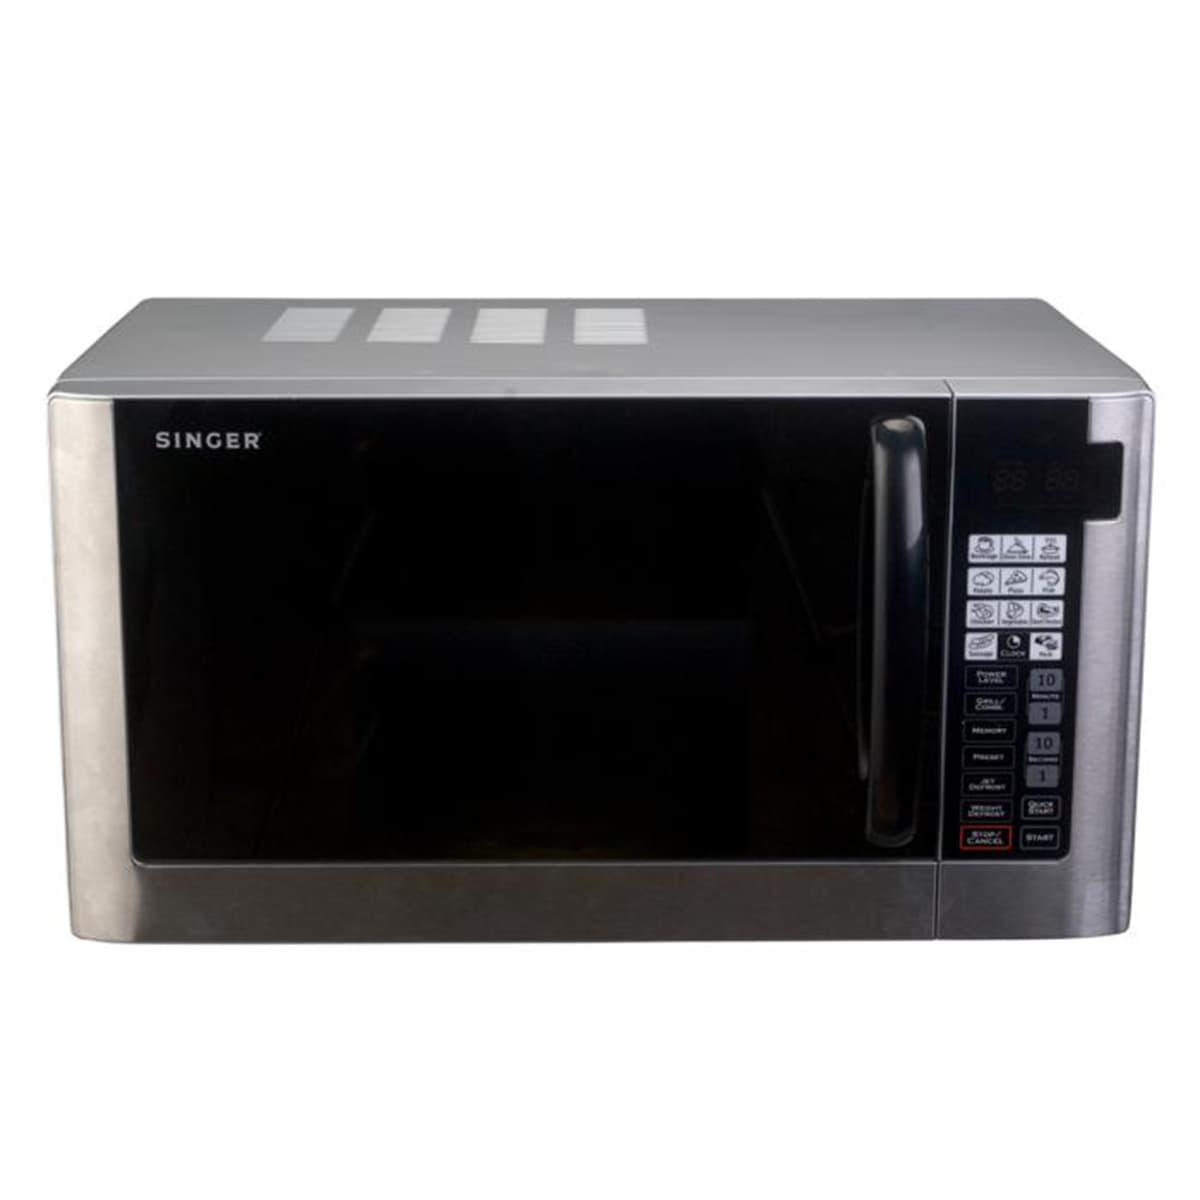 Singer Smwg30g6 Microwave Oven Combi Grill 30l